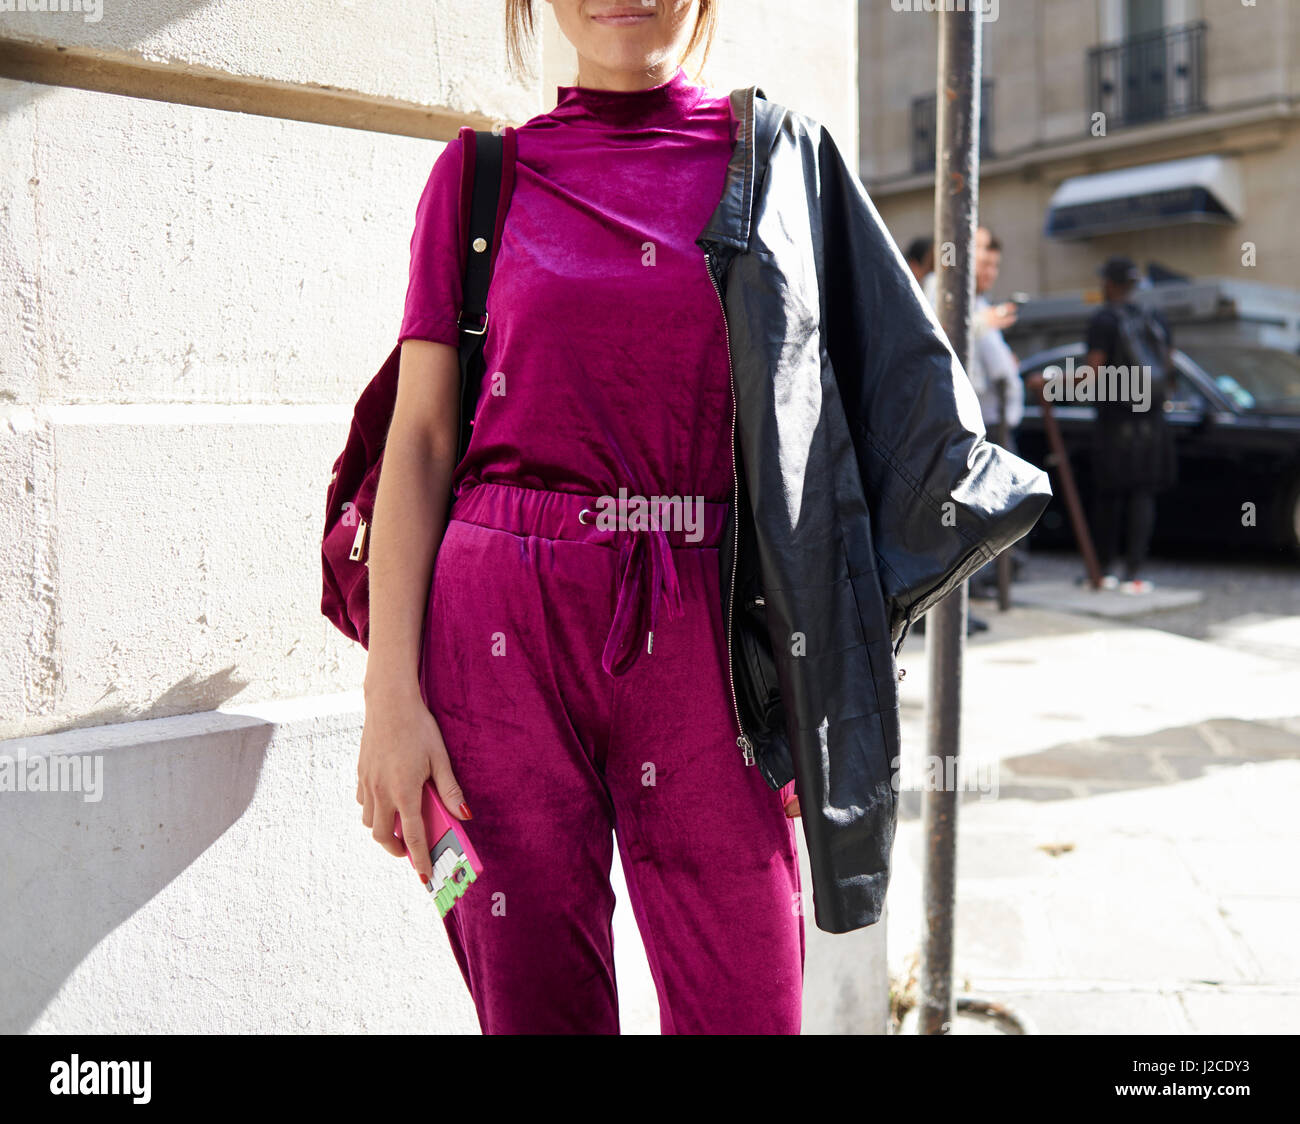 Woman in magenta top and track pants in street, crop - Stock Image